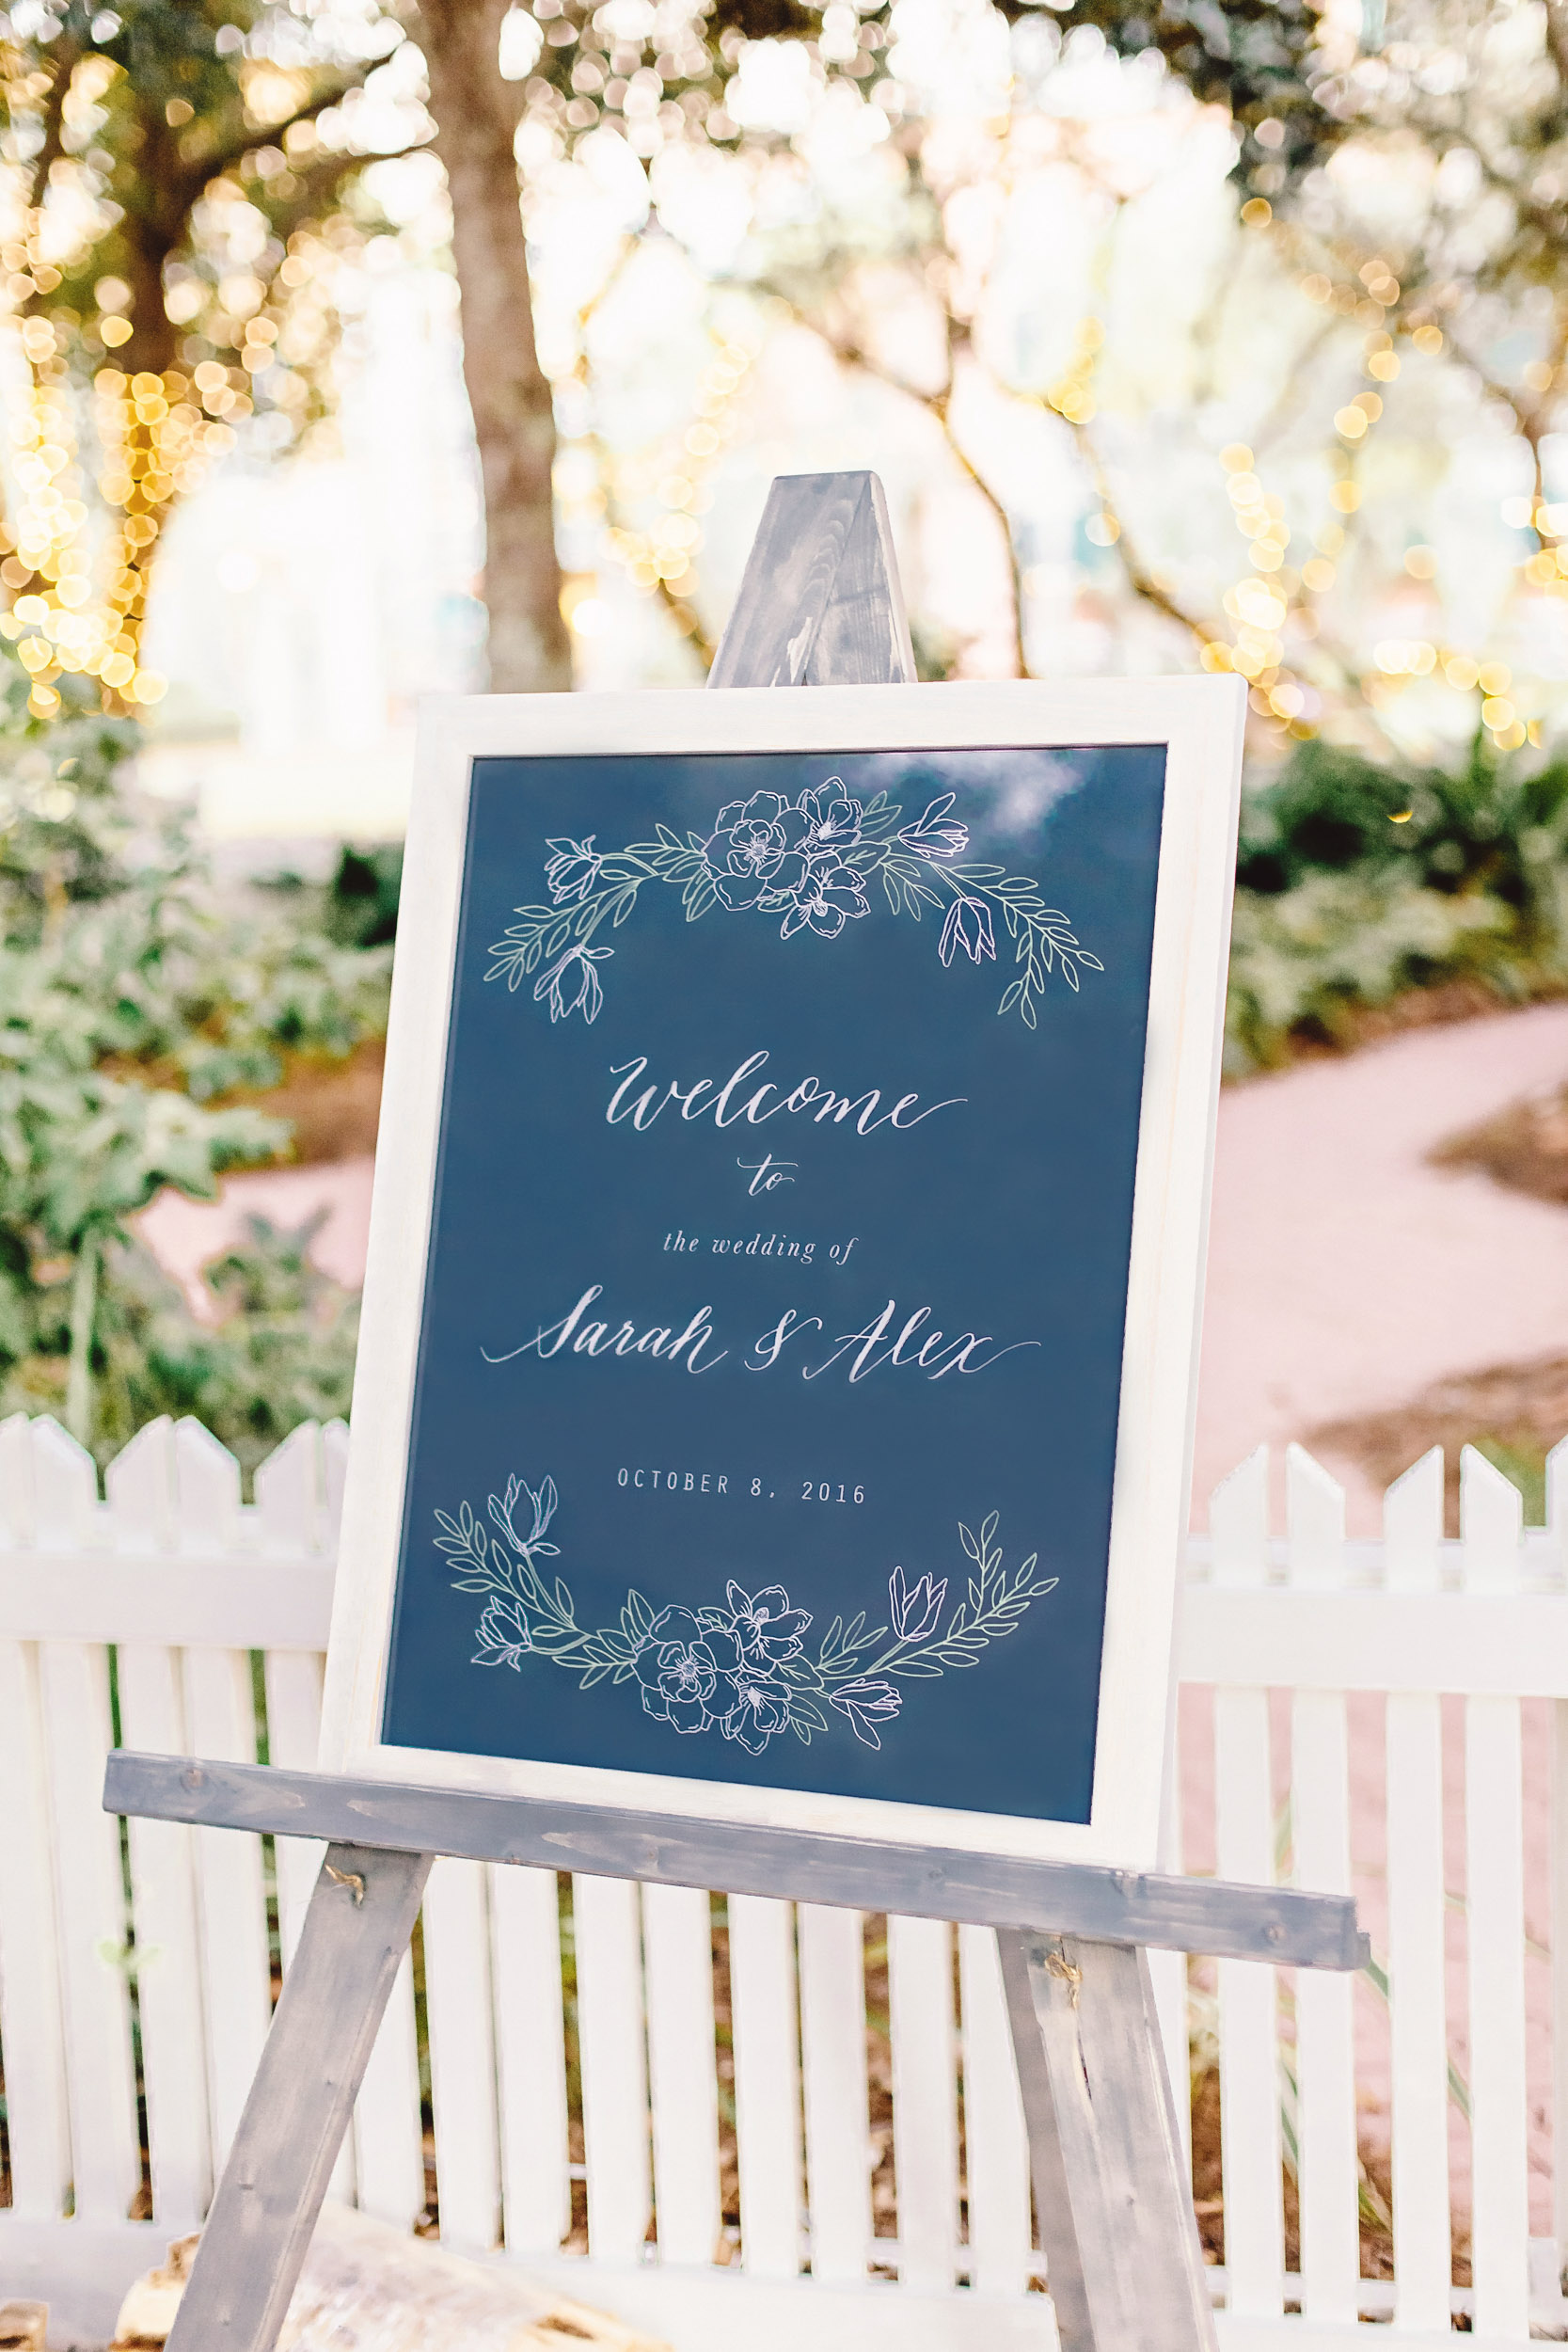 Wedding Welcome Signage_Dreams and Nostalgia.jpg